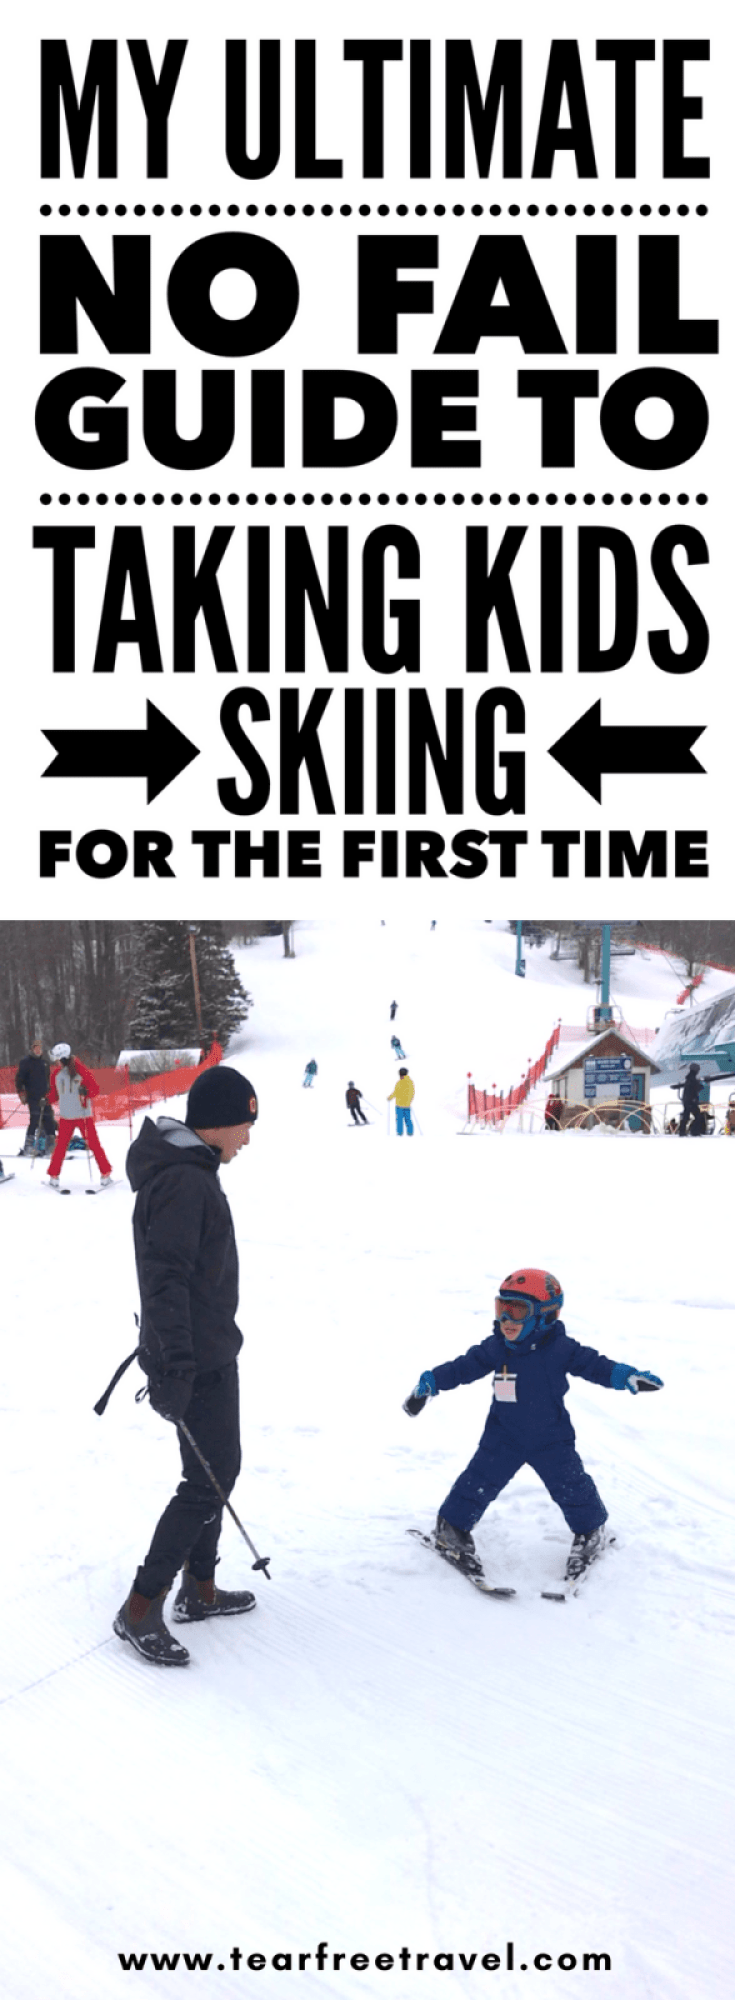 Are you planning a trip skiing with kids? Check out my no fail guide to first time skiing with kids. I'll review the best kids skiing tips, toddler skiing tips and all the kids ski gear we brought along. All you need to be prepared for your first time with children. Save this for your next family winter getaway! #skiing #winter #winterfun #wintergetway #kidstravel #outdoor #snow